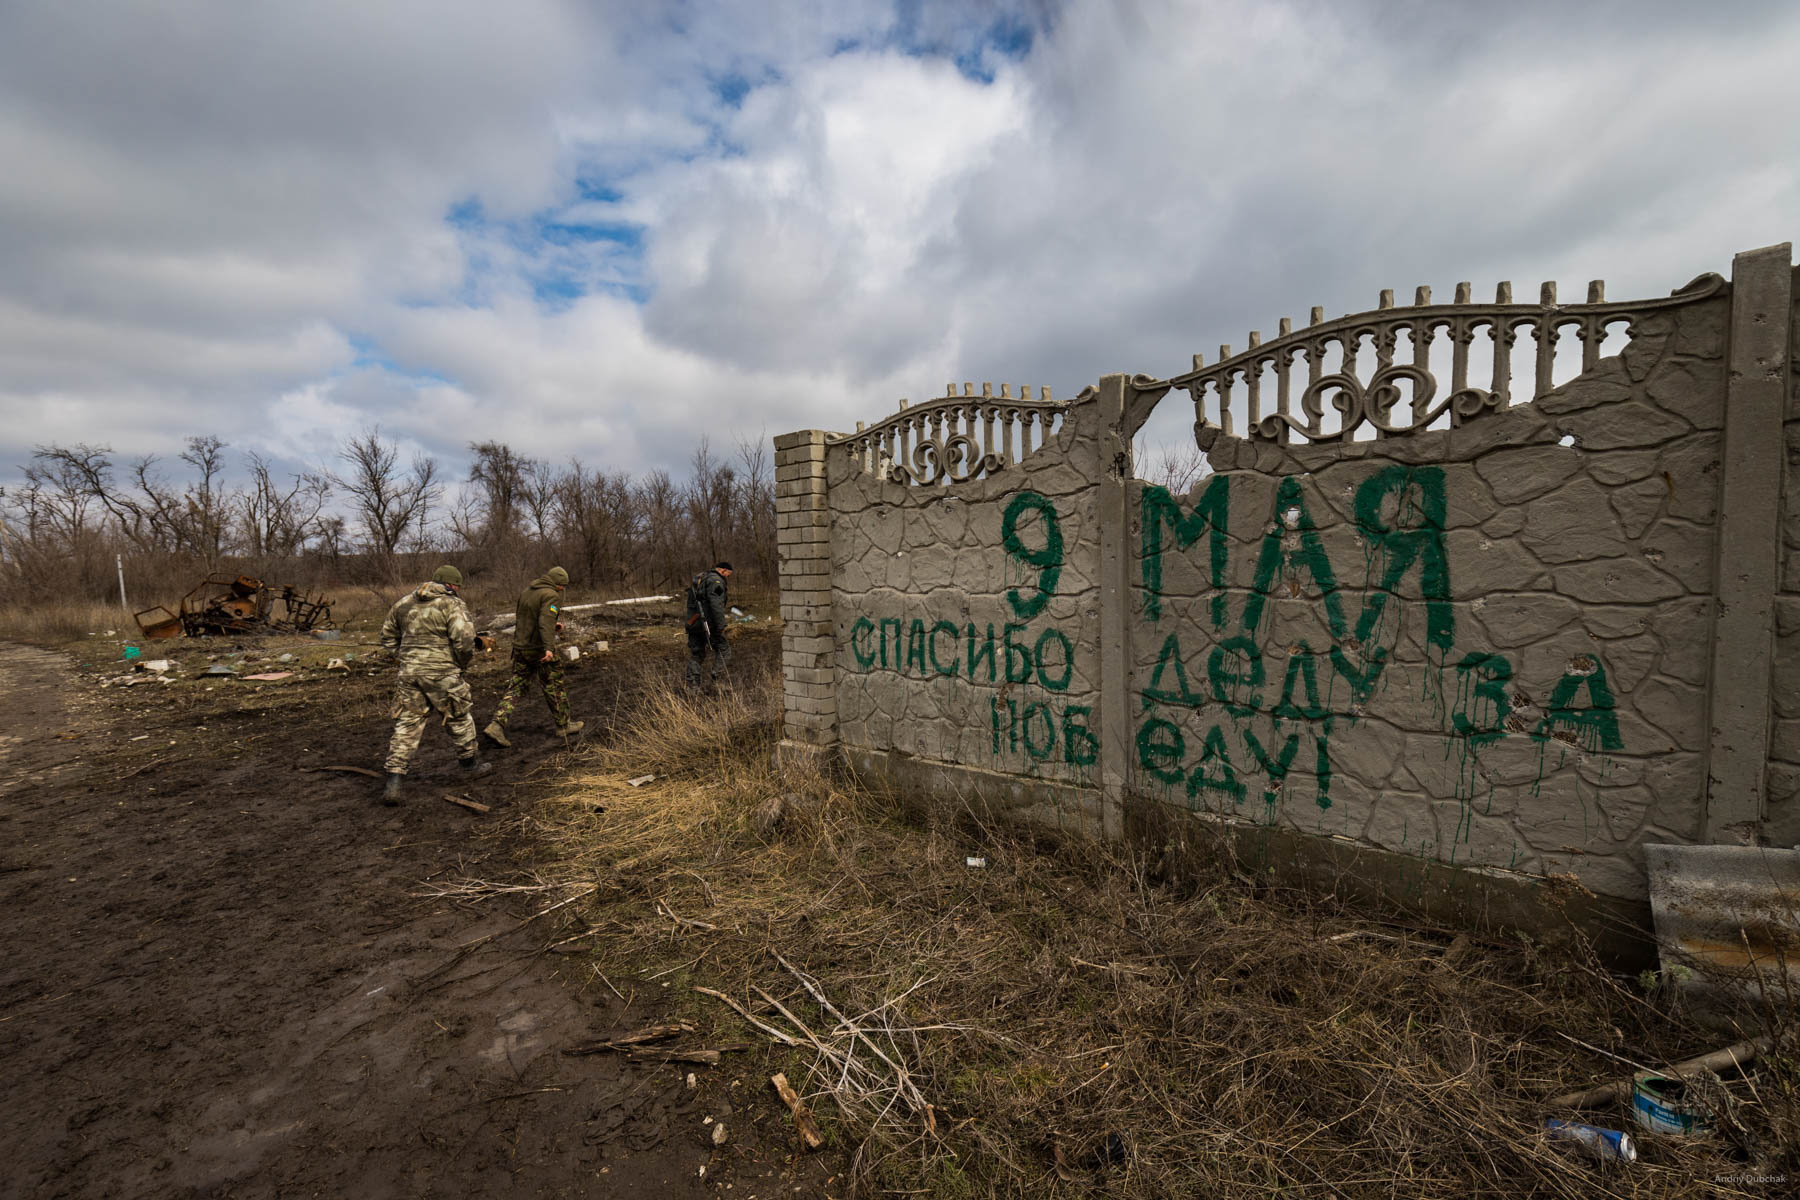 """May 9th, thank your grandfather for the victory!"" - an inscription made by pro-Russian militants in Shirokine, before Ukrainian marines drove them out from the village in 2016. Currently, the whole of Shirokine is under control of the Ukrainian Army. Enemy positions are several hundred meters away from the village. Shirokine, March 2018."